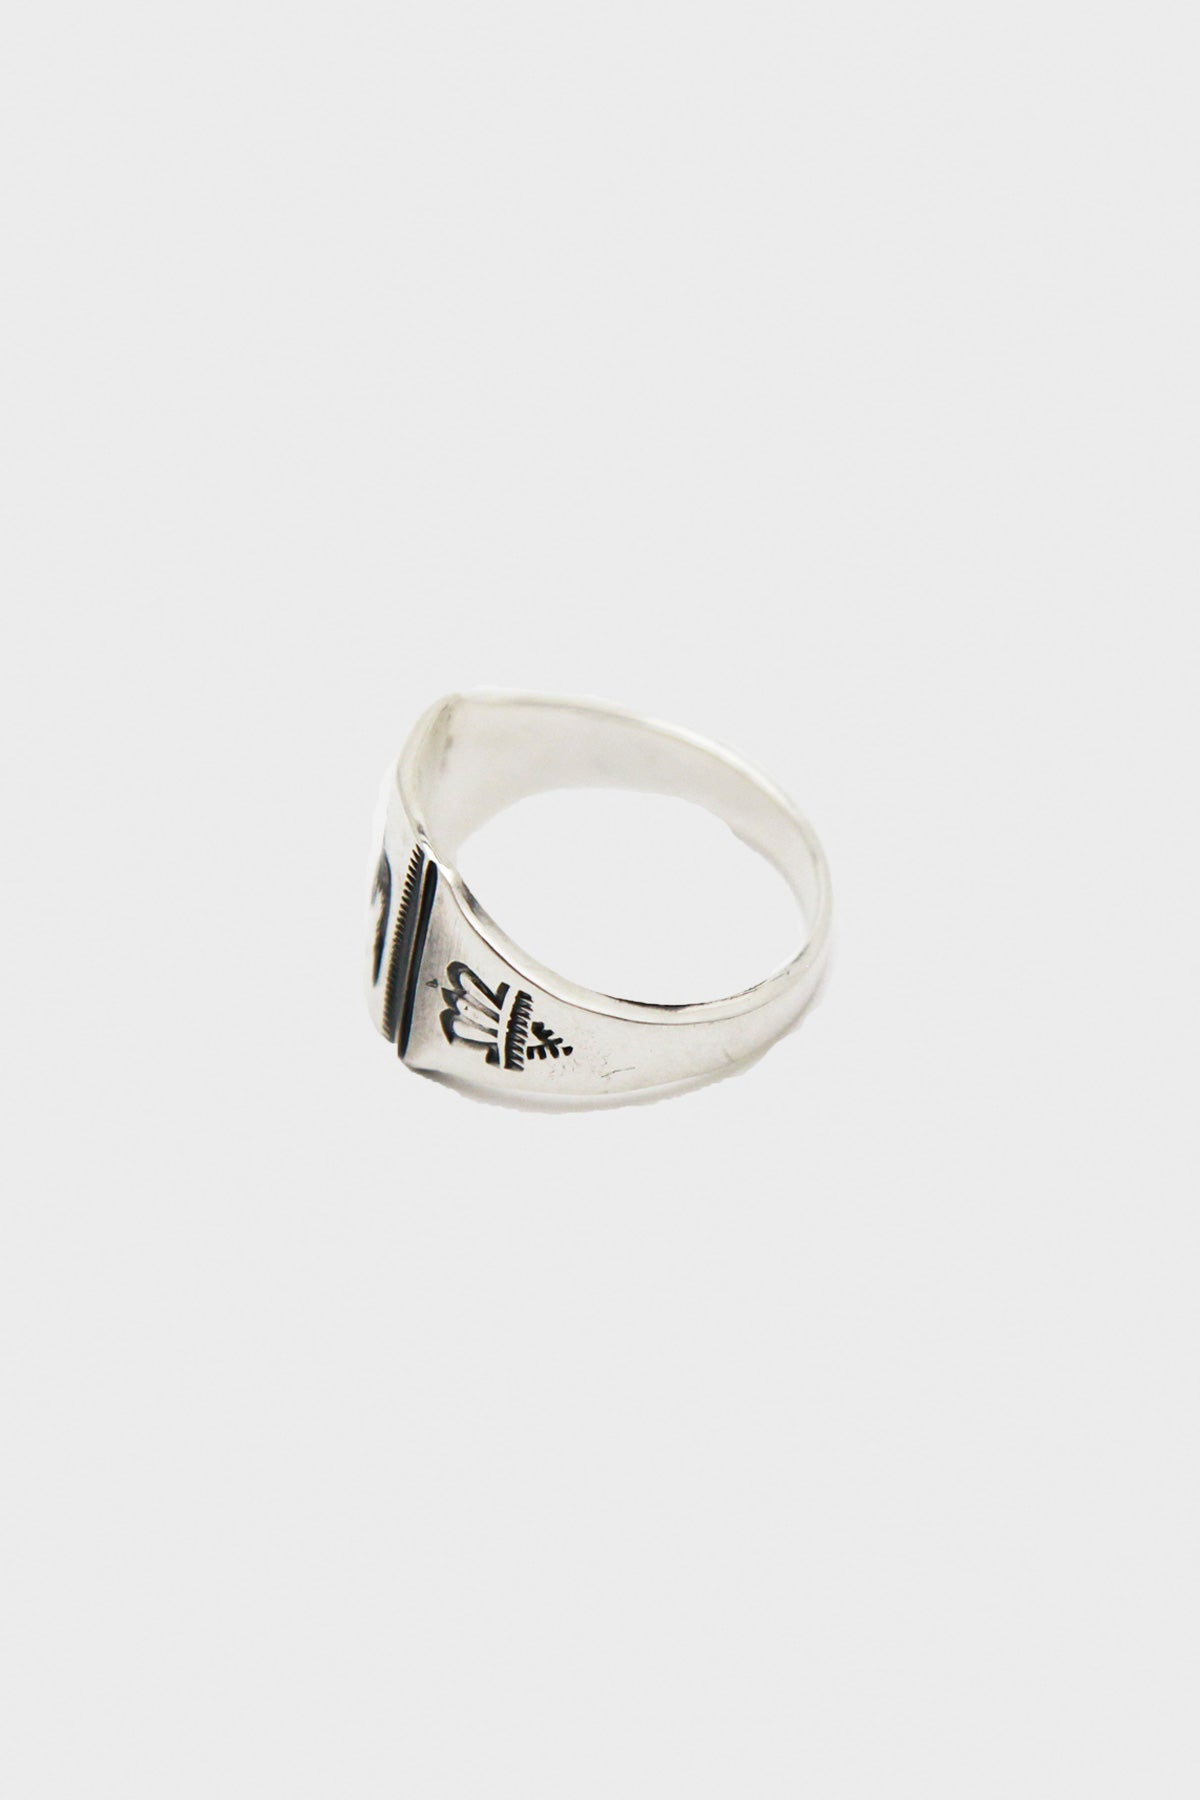 Larry Smith - Stamped Ring - Canoe Club